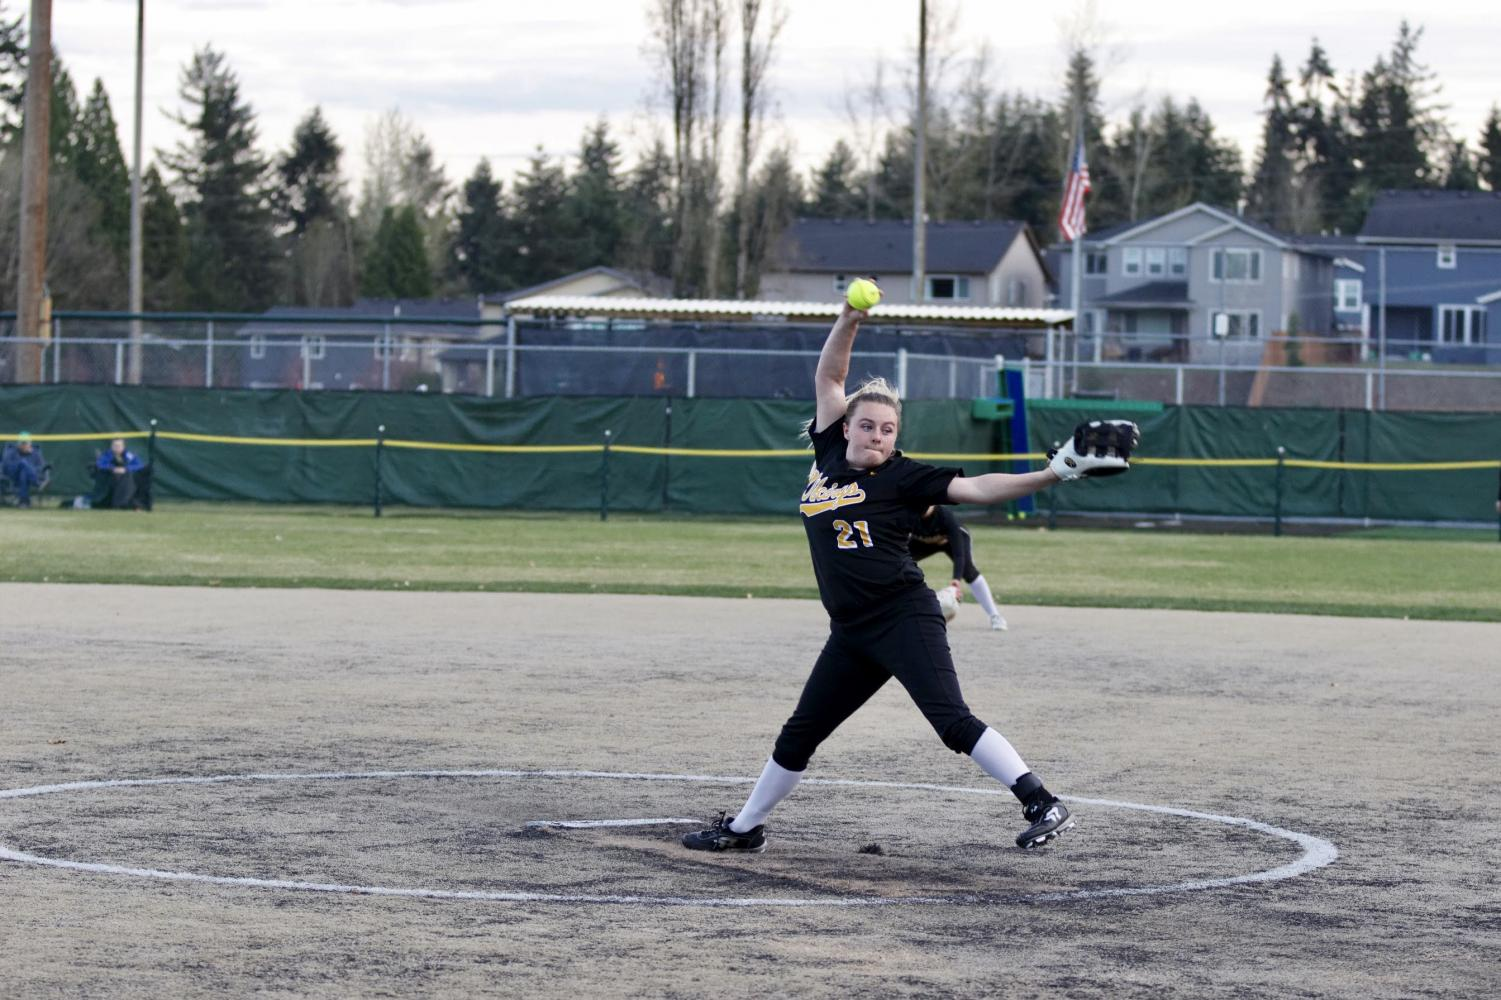 Pitcher Taylor Waara fires a pitch across the plate against the Woodinville Falcons. The girls lost a low scoring game, falling to the Falcons 2-1 on April 1st.